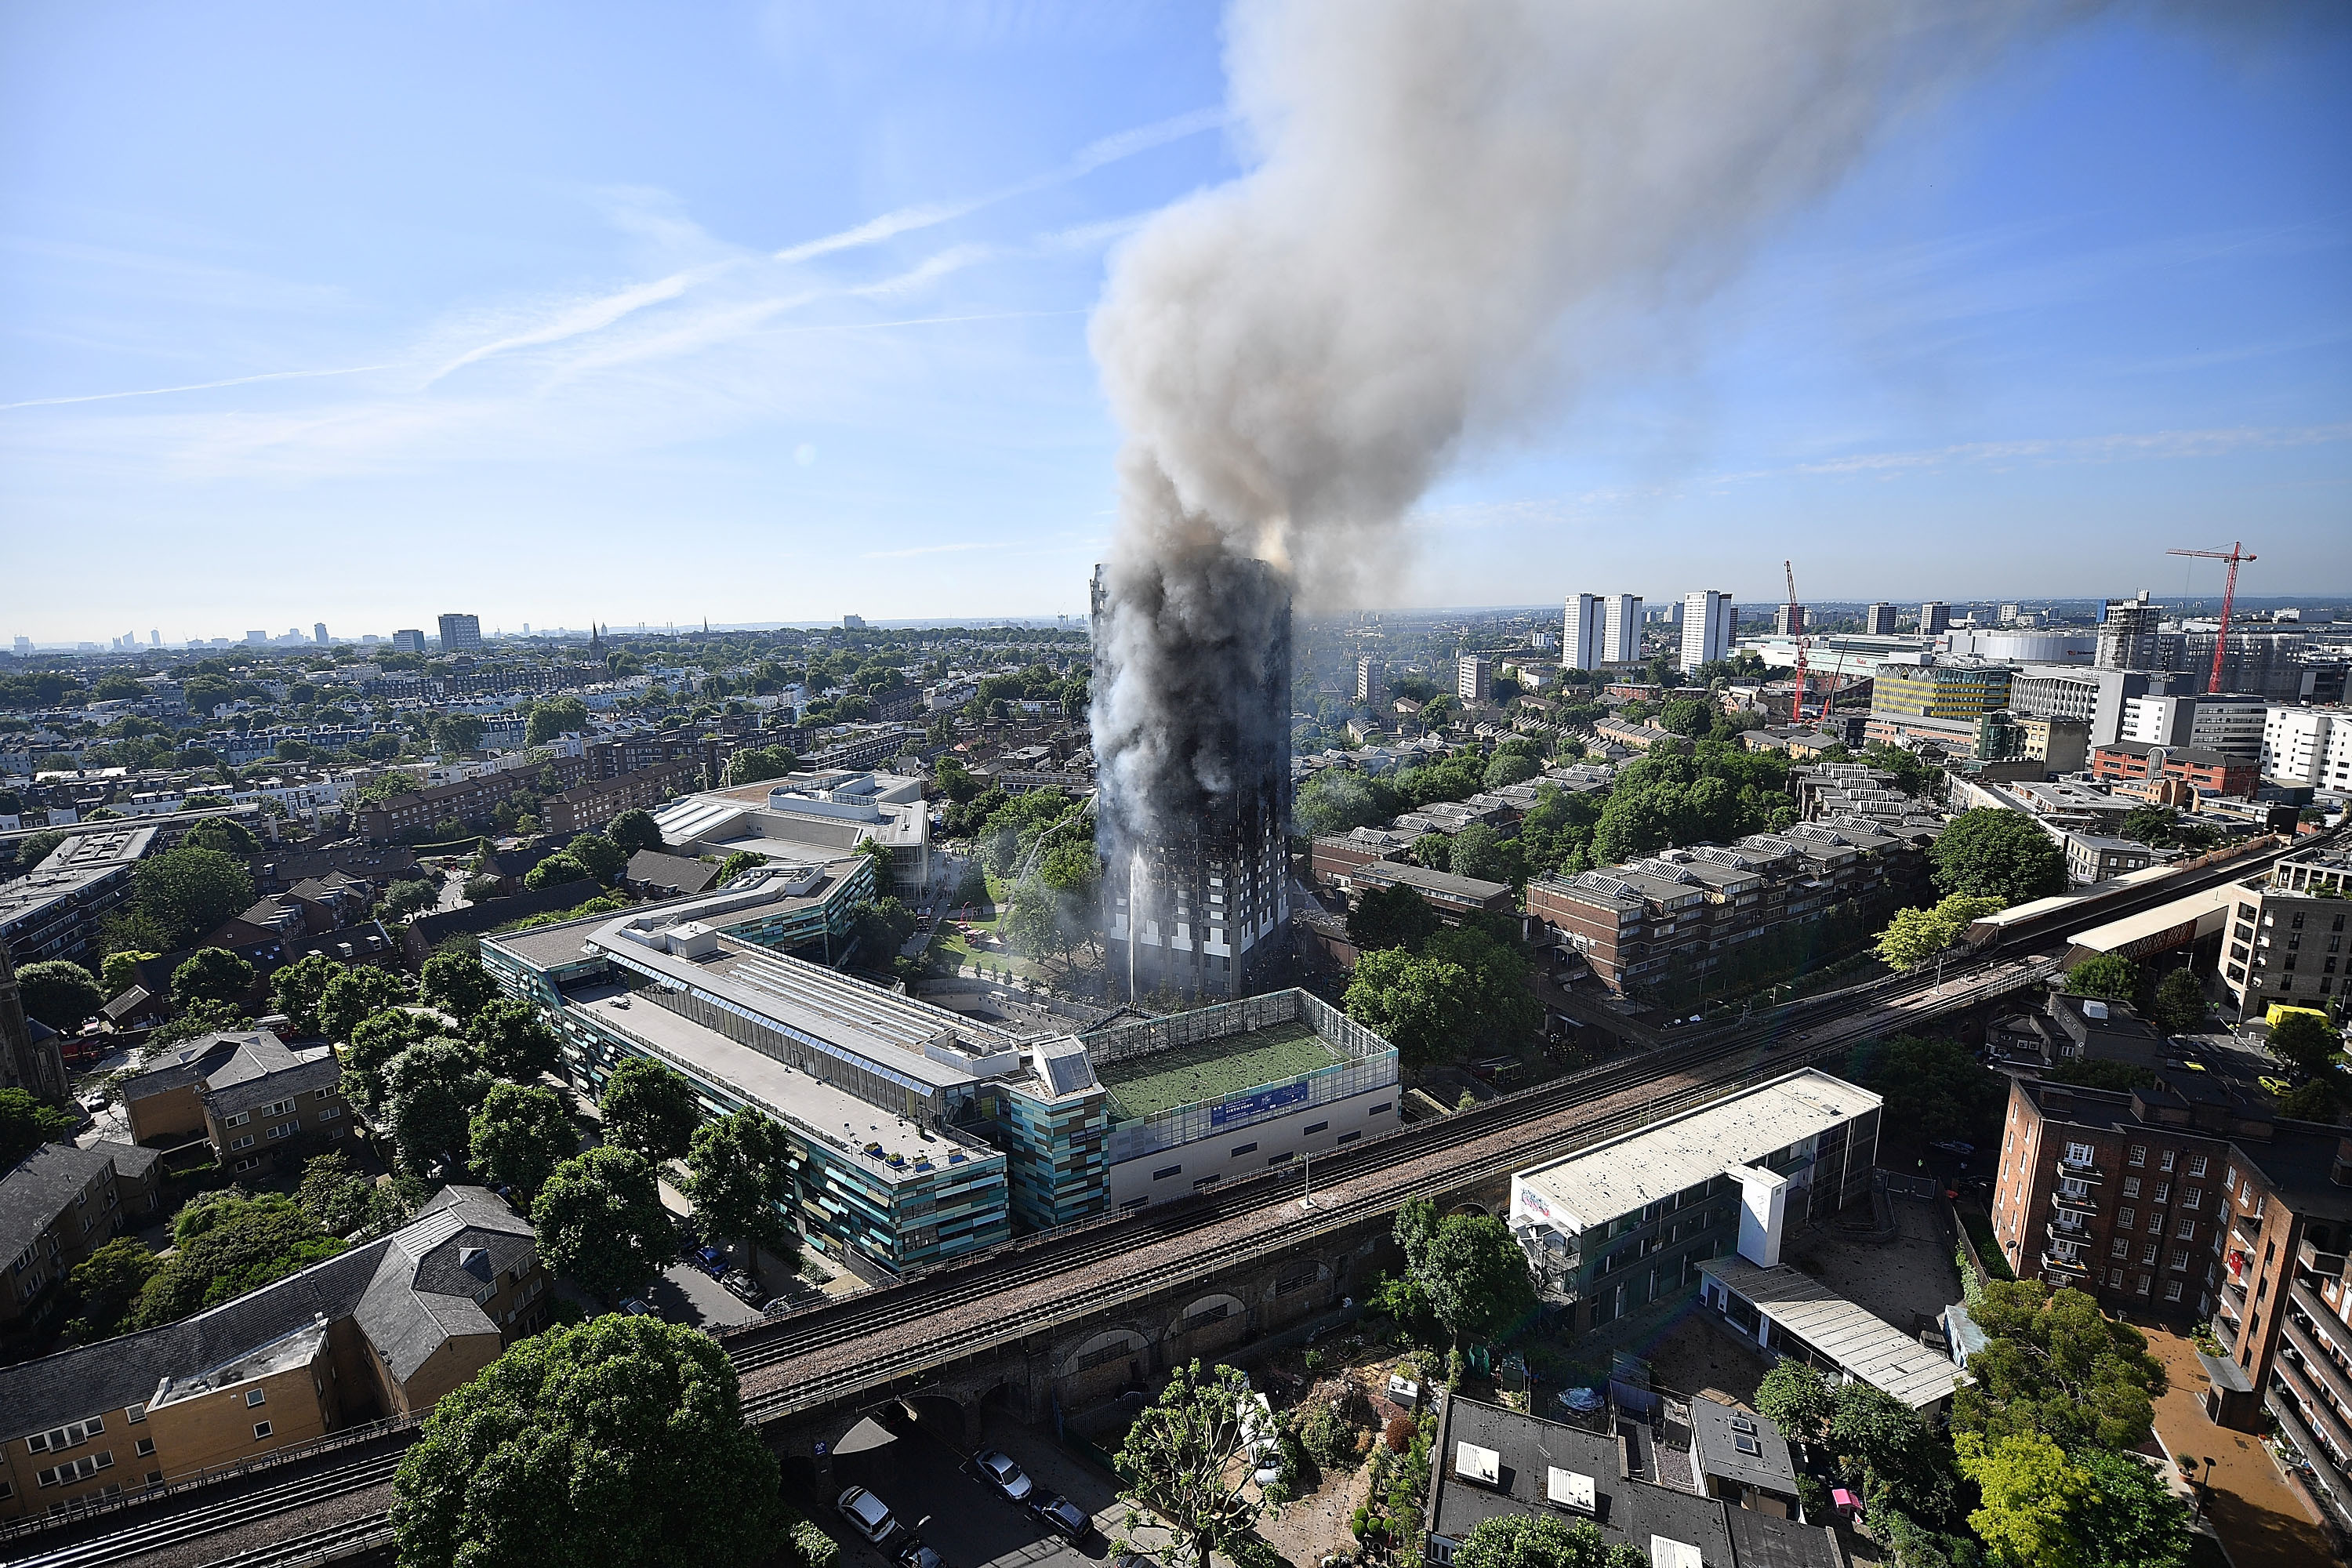 LONDON, ENGLAND - JUNE 14:  Smoke rises from the building after a huge fire engulfed the 24 story Grenfell Tower in Latimer Road, West London in the early hours of this morning on June 14, 2017 in London, England.  The Mayor of London, Sadiq Khan, has declared the fire a major incident as more than 200 firefighters are still tackling the blaze while at least 50 people are receiving hospital treatment.  (Photo by Leon Neal/Getty Images)